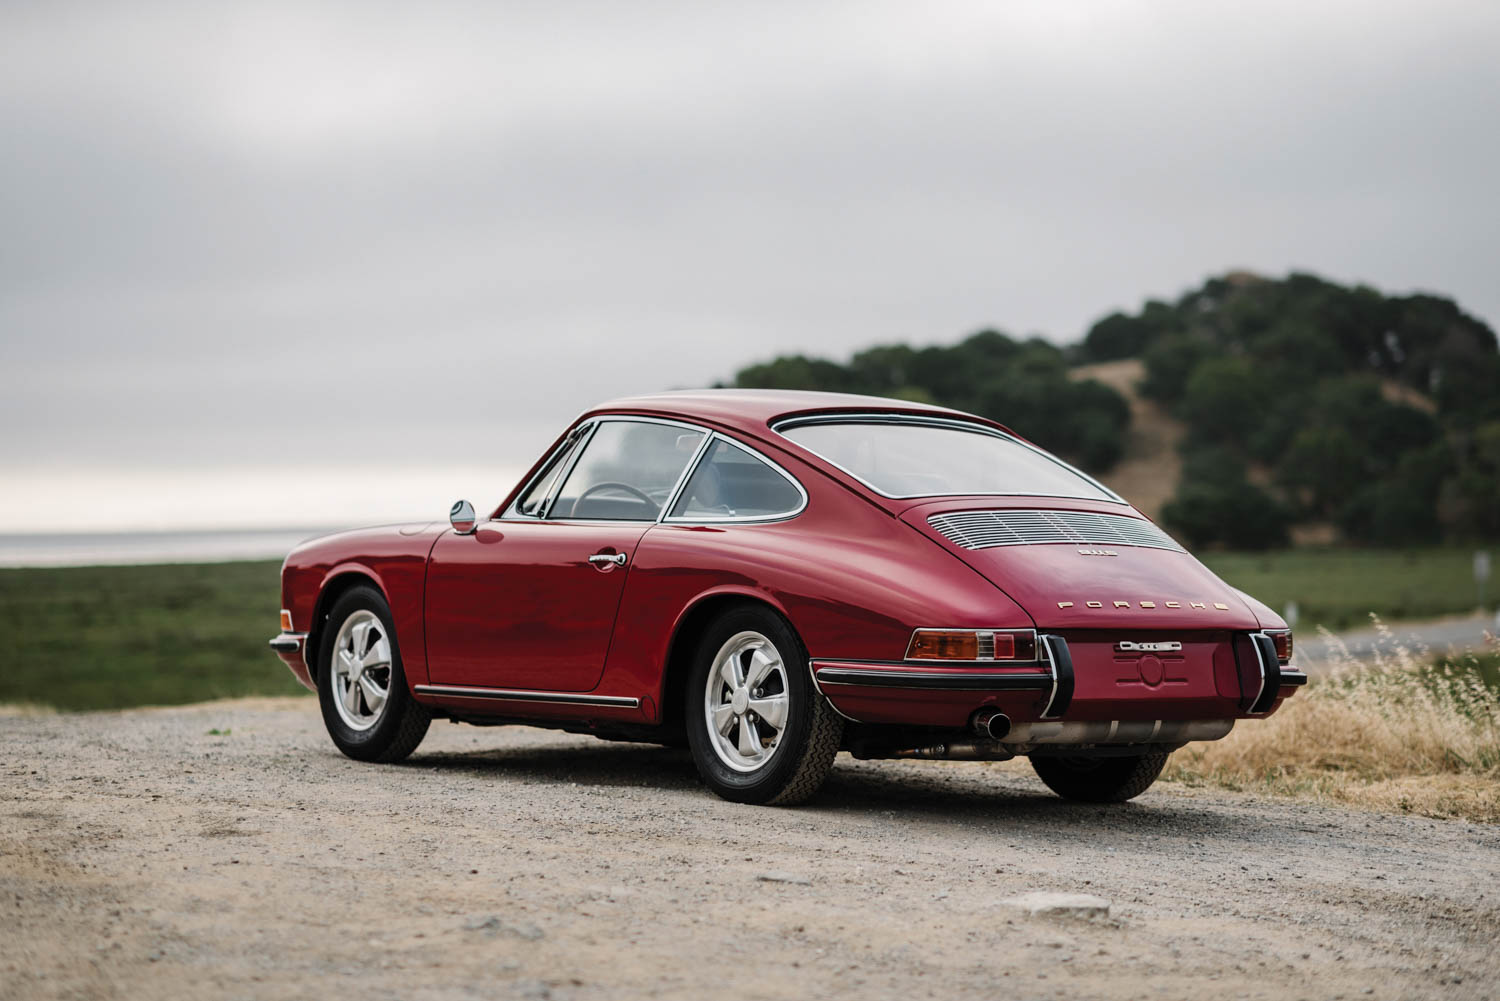 1967 Porsche 911 S Coupe rear 3/4